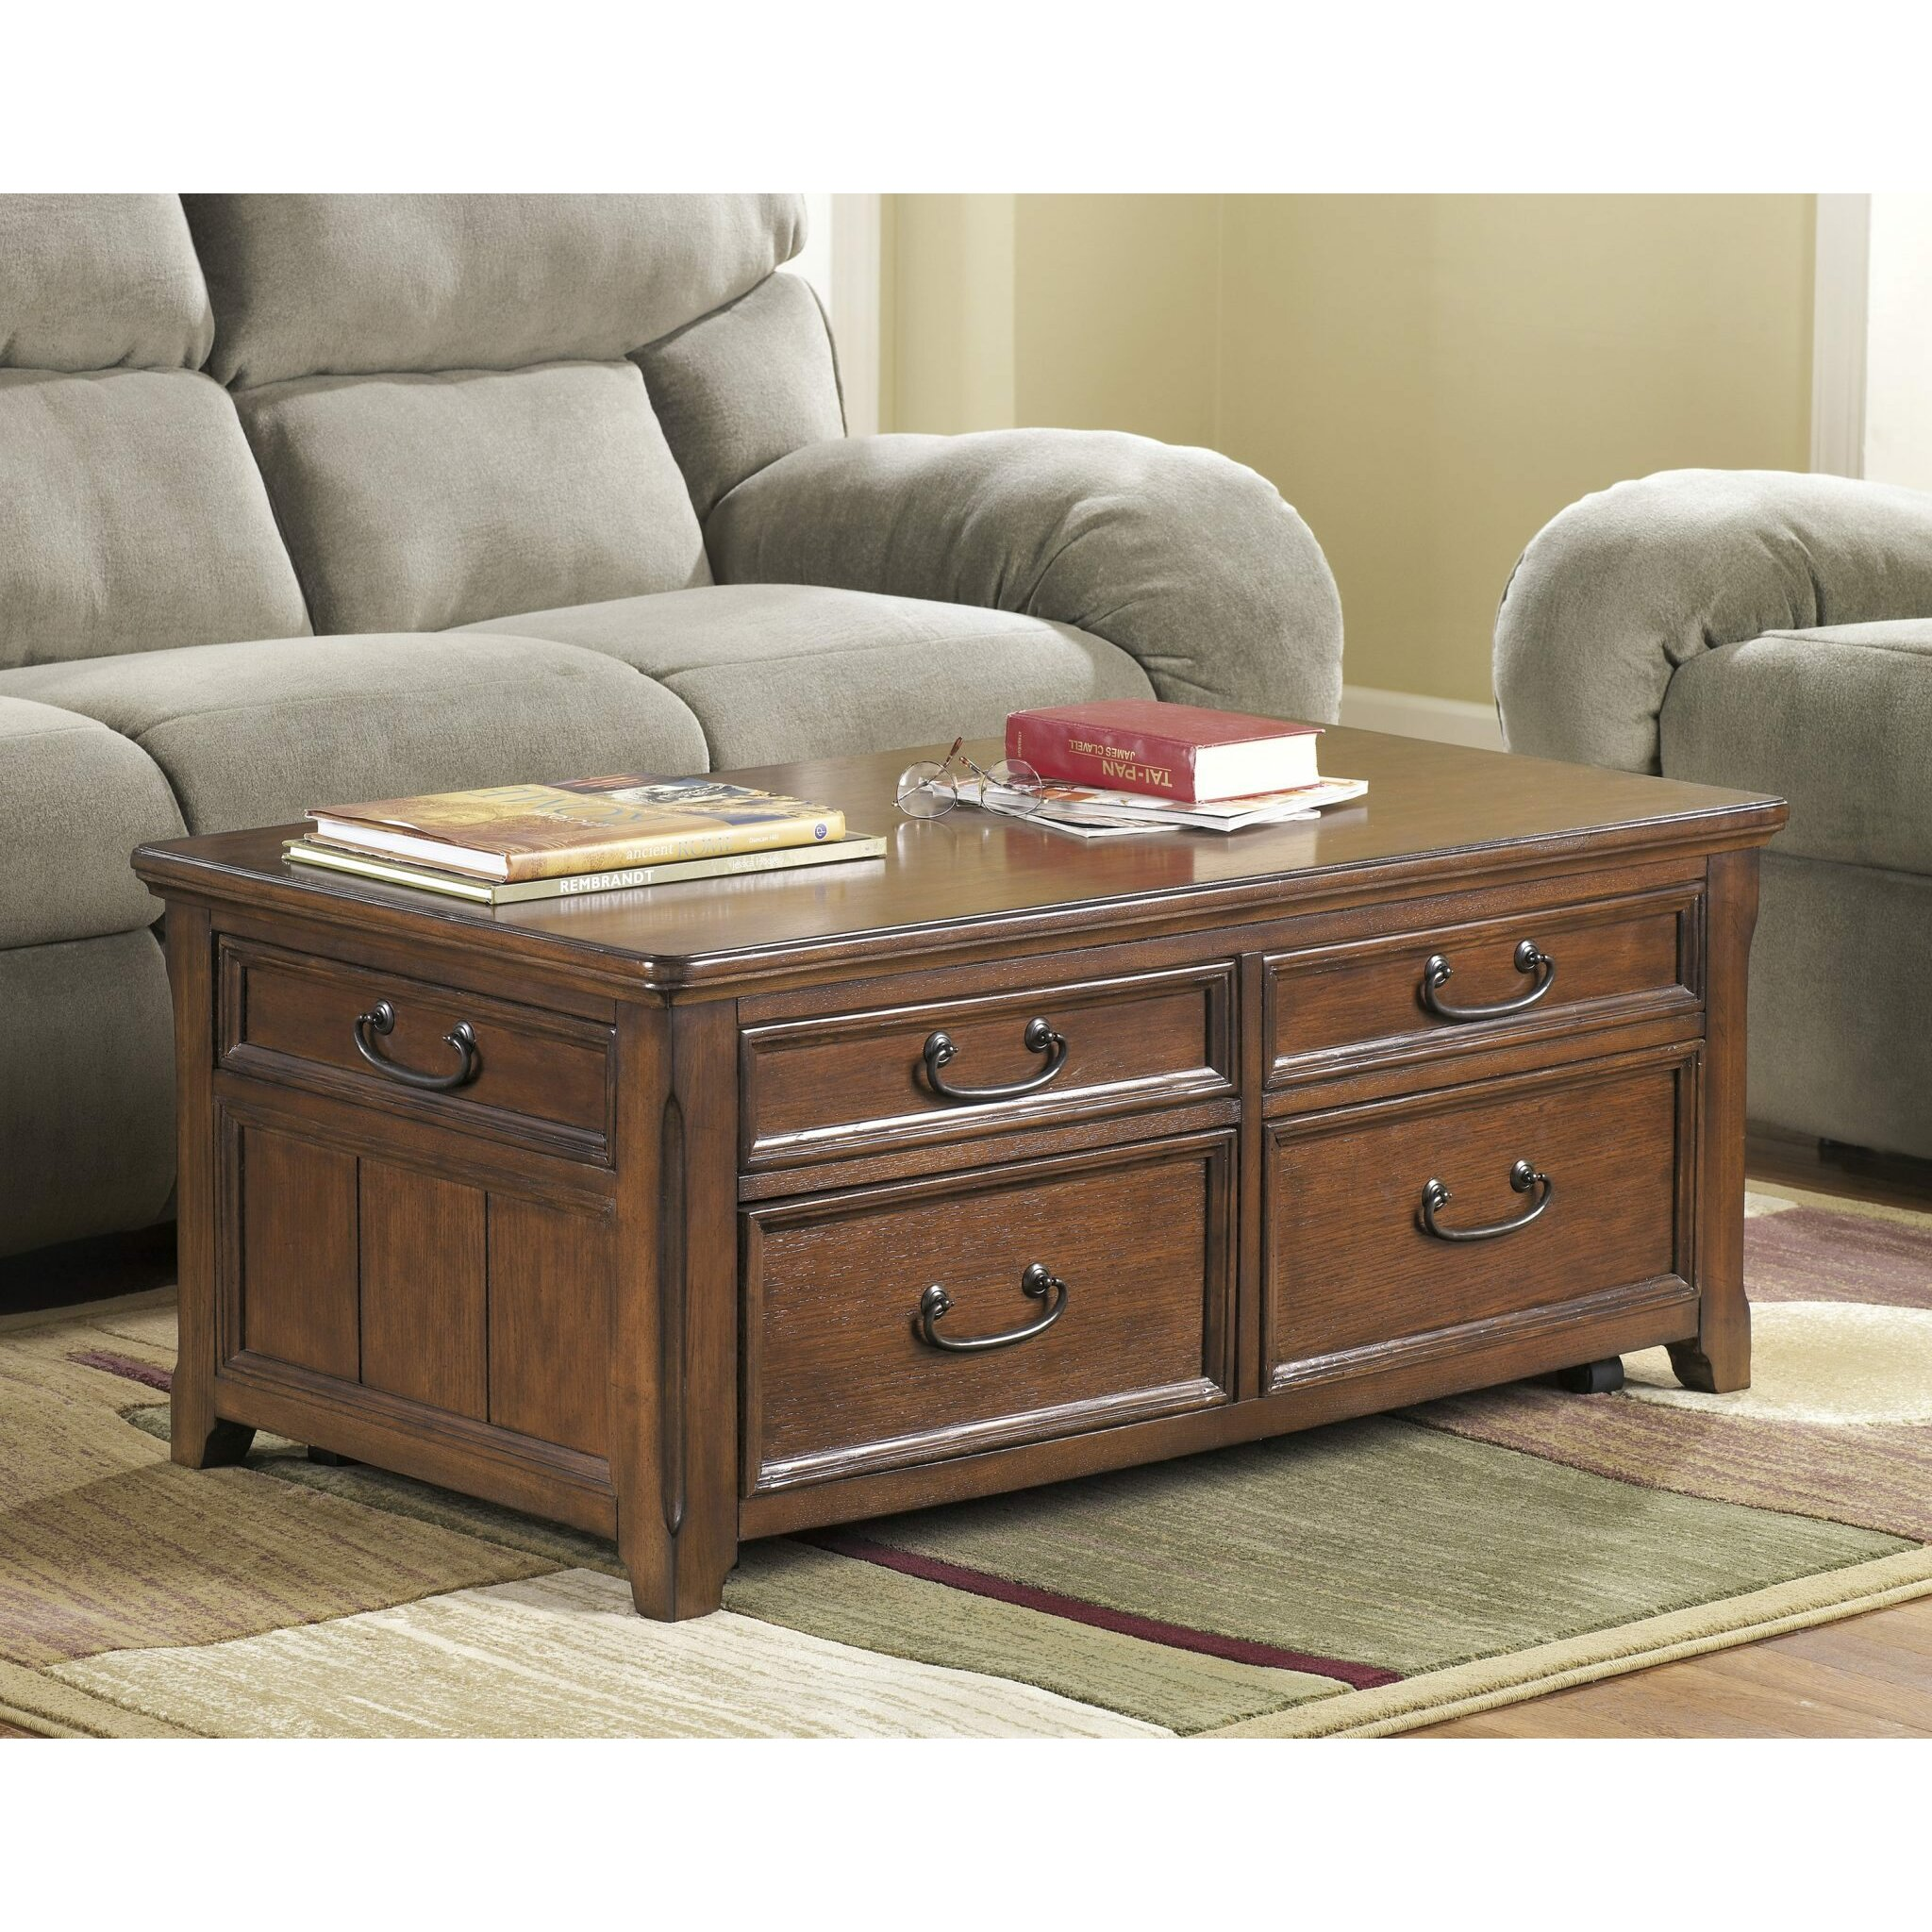 Nailhead Coffee Table Darby Home Co Mathis Coffee Table Trunk With Lift Top Reviews